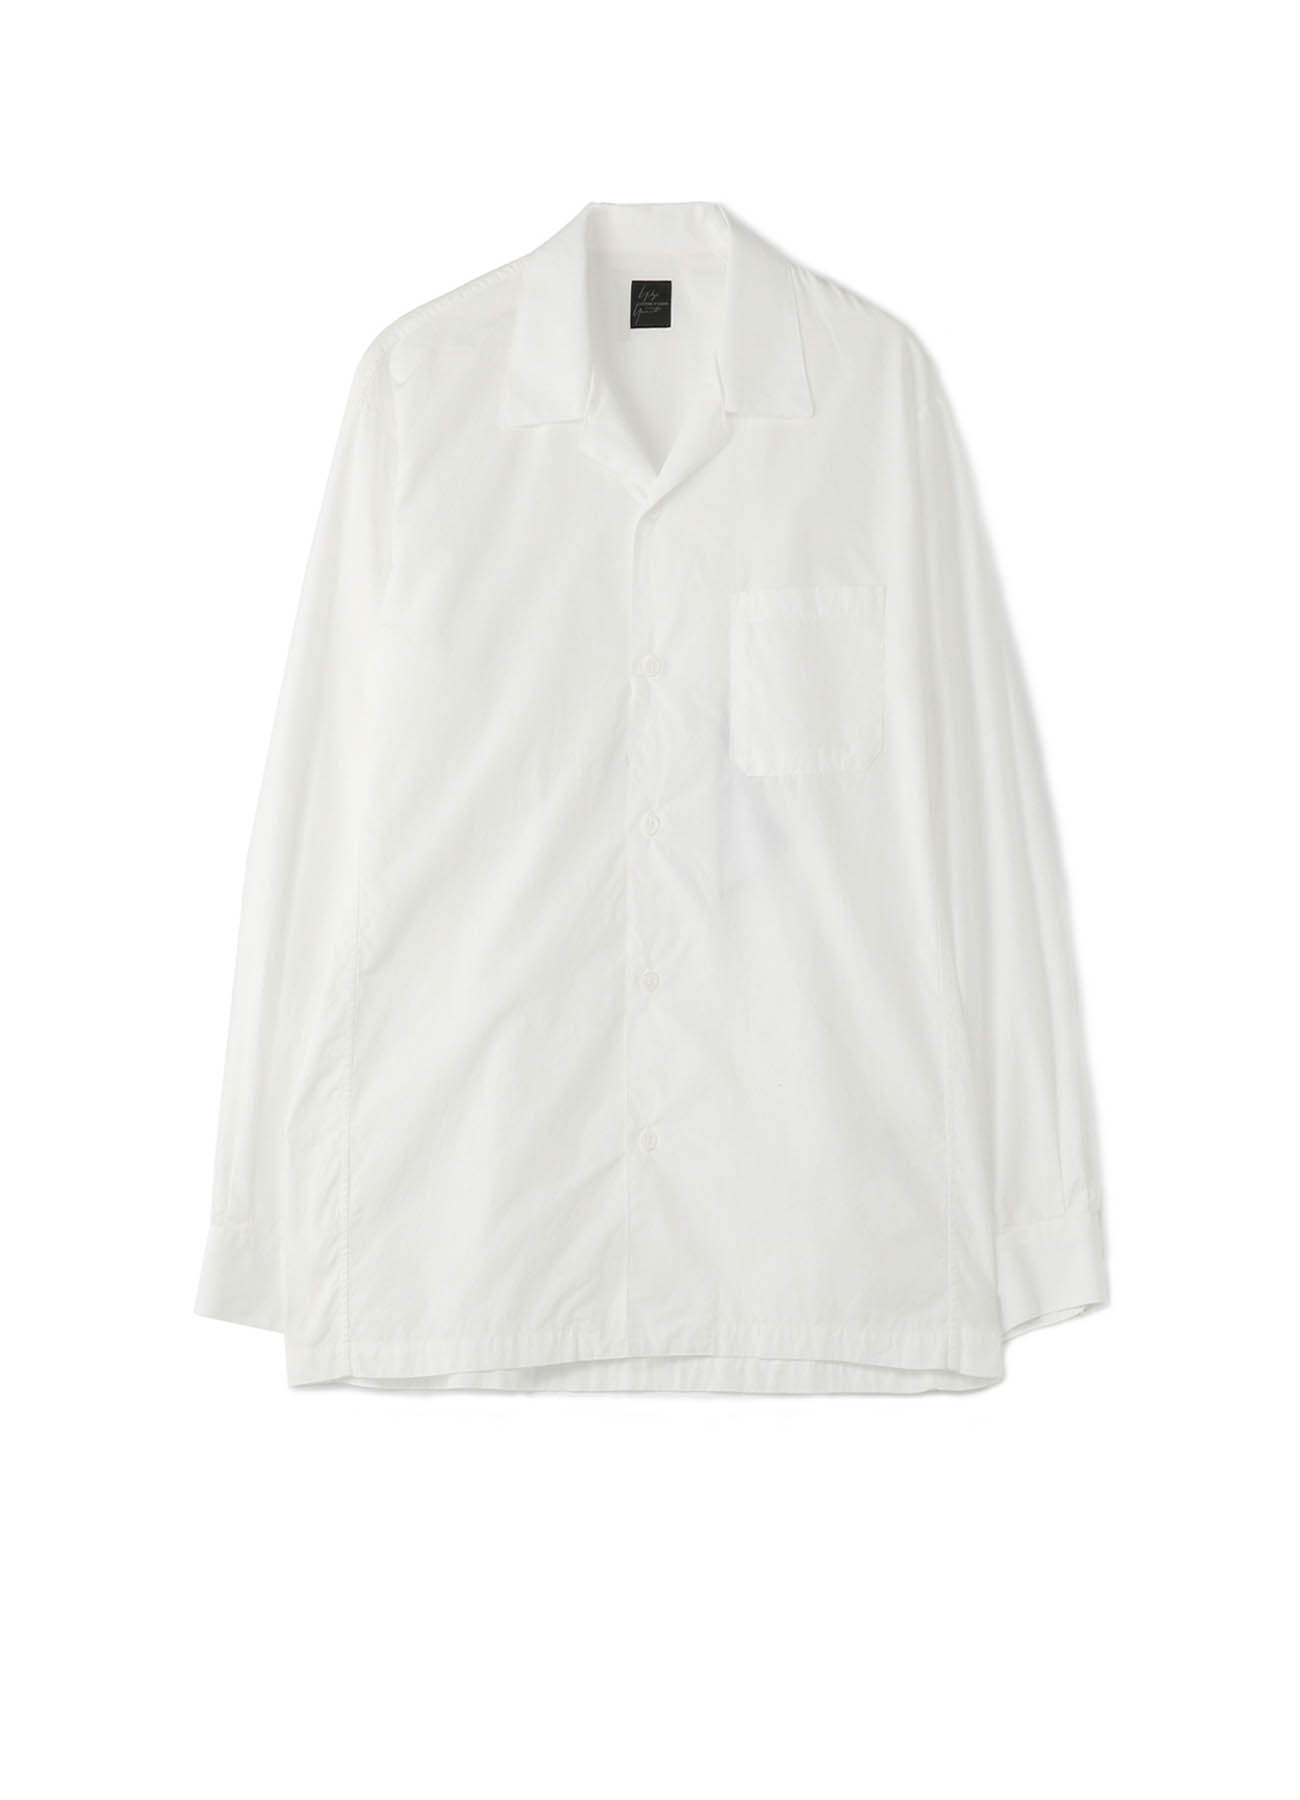 COSTUME D'HOMME 4 DIMENSION MOTION CUTTING OPEN COLLAR SHIRT